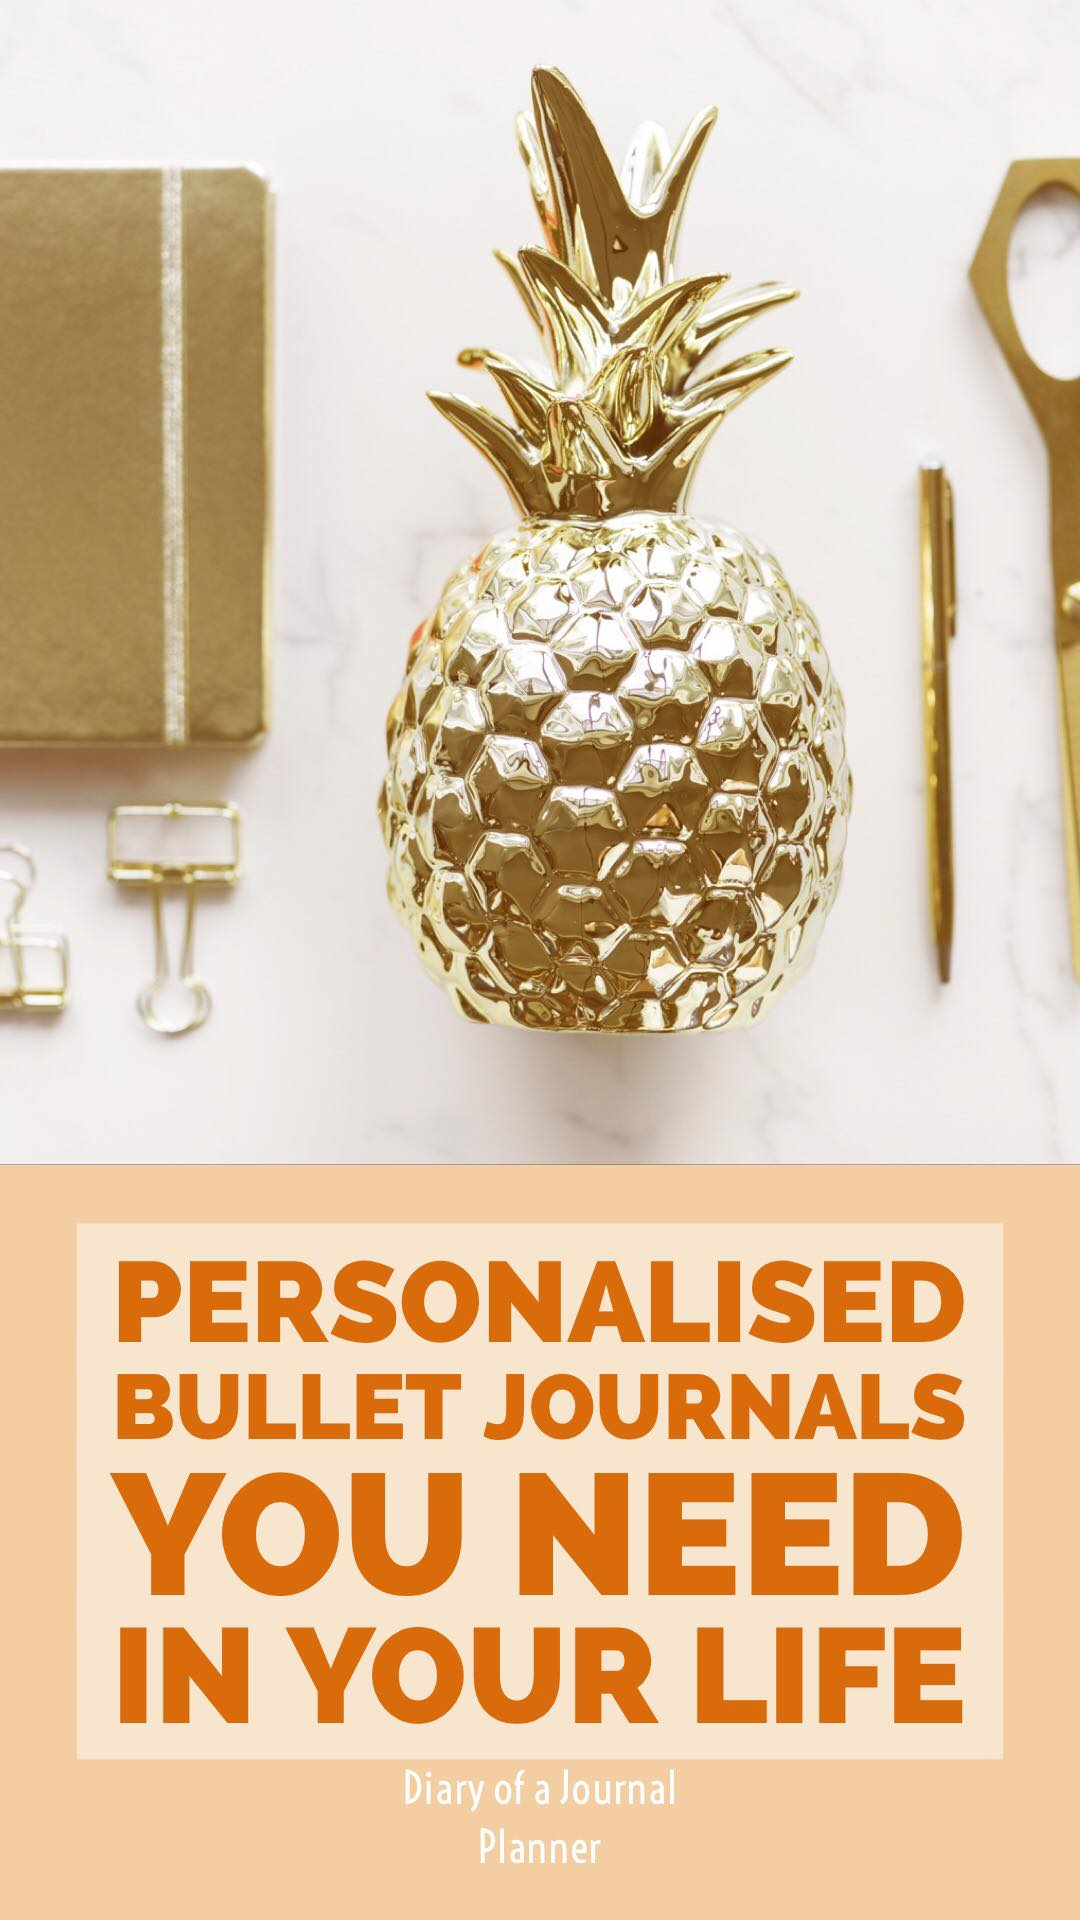 Custom made bullet journals handmade notebooks and covers